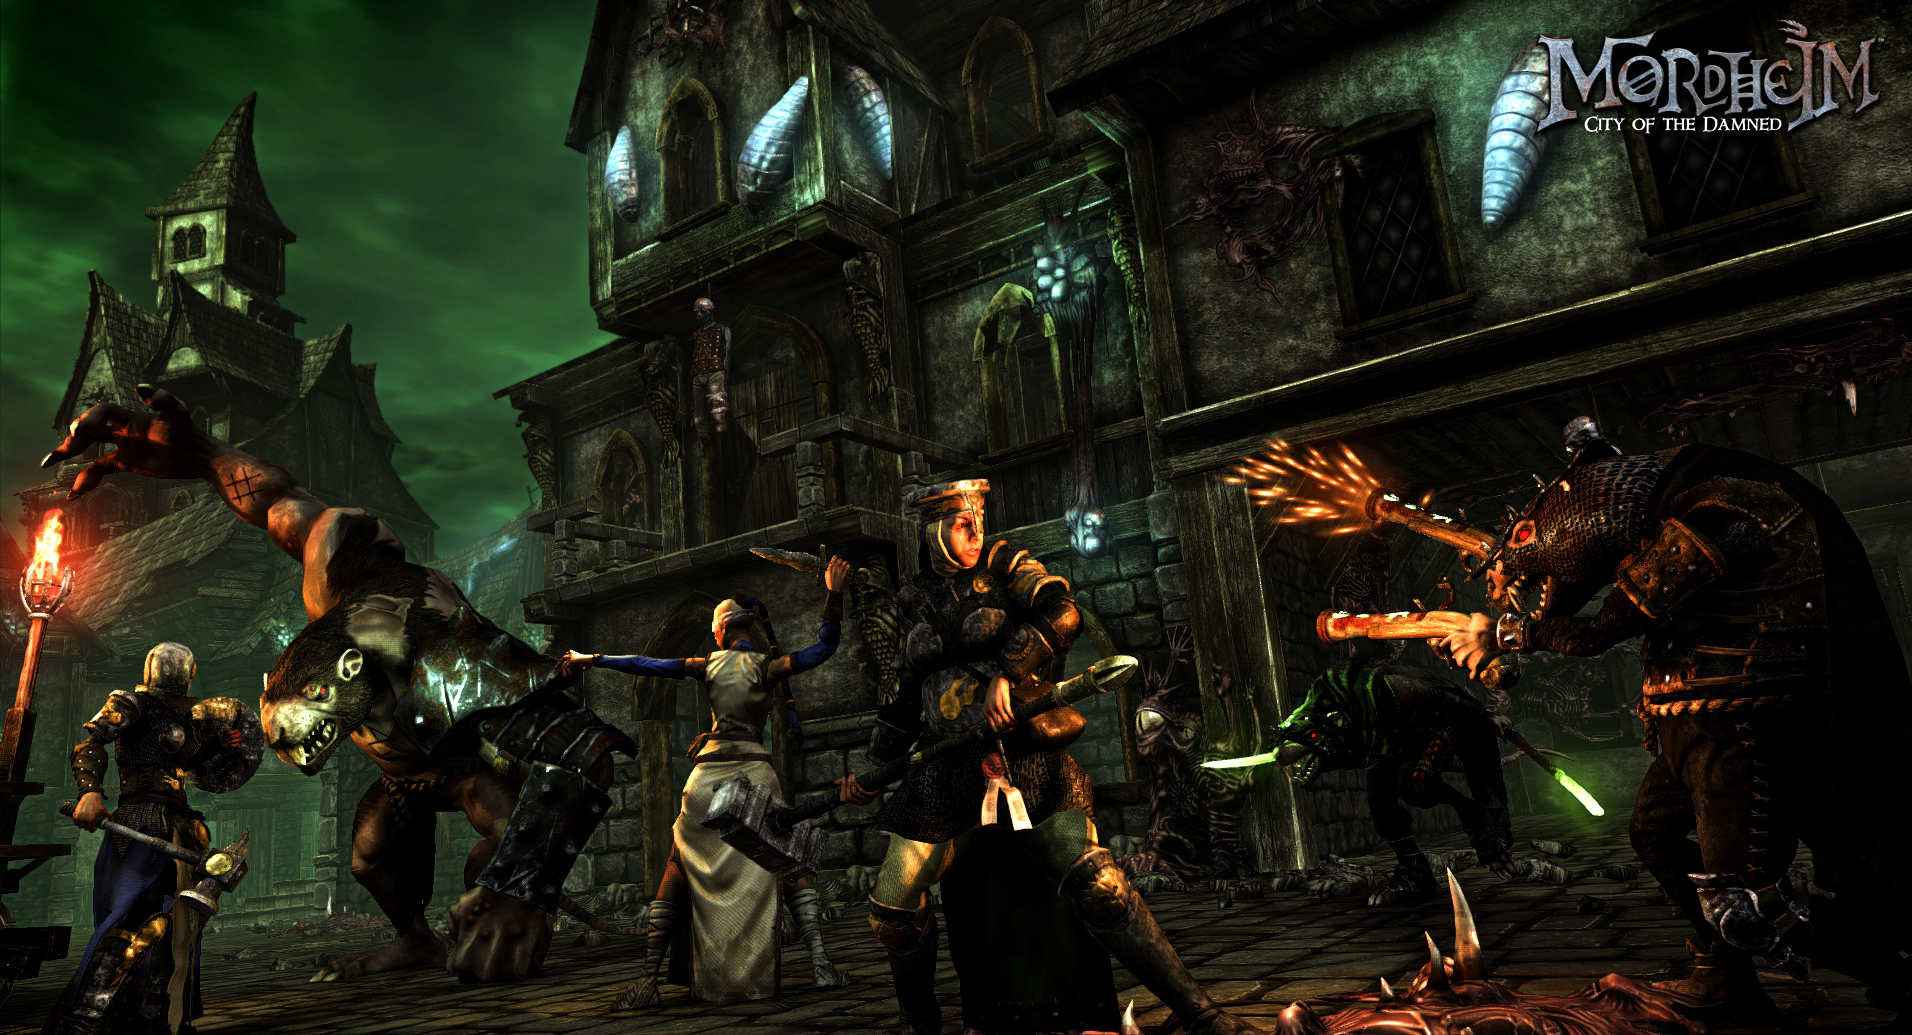 mordheim_city_of_the_damned_publisher_weekend_sale_on_steam_for_linux_mac_pc